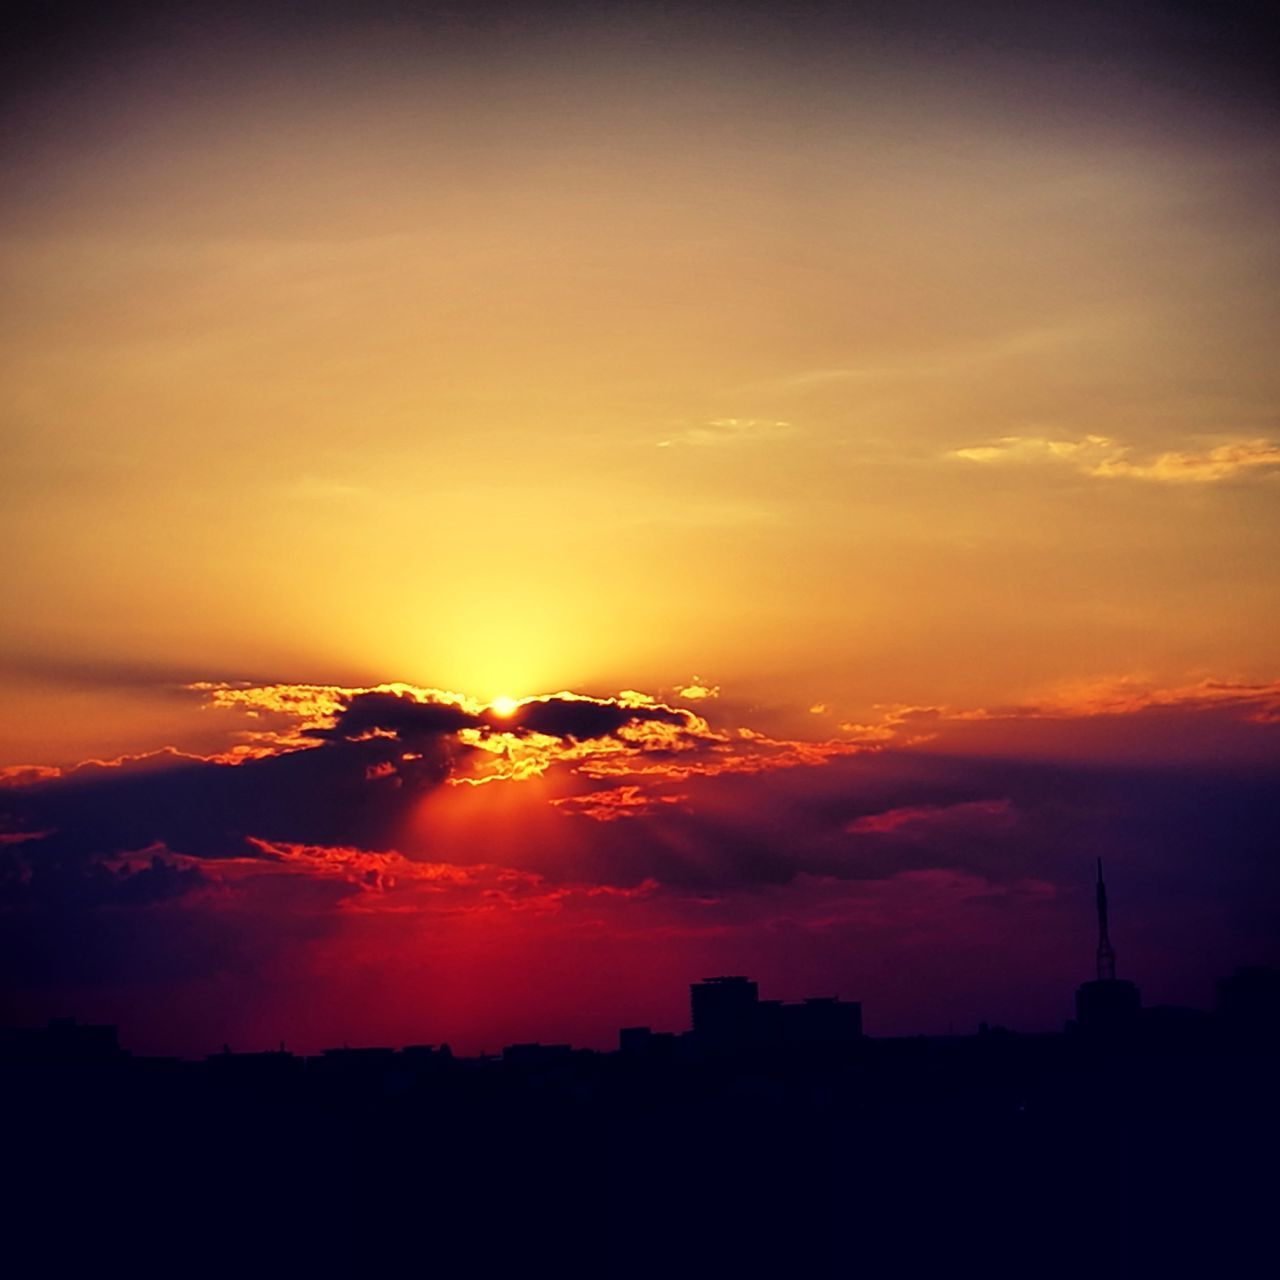 sunset, silhouette, sky, architecture, city, cityscape, no people, sun, skyscraper, building exterior, built structure, nature, outdoors, beauty in nature